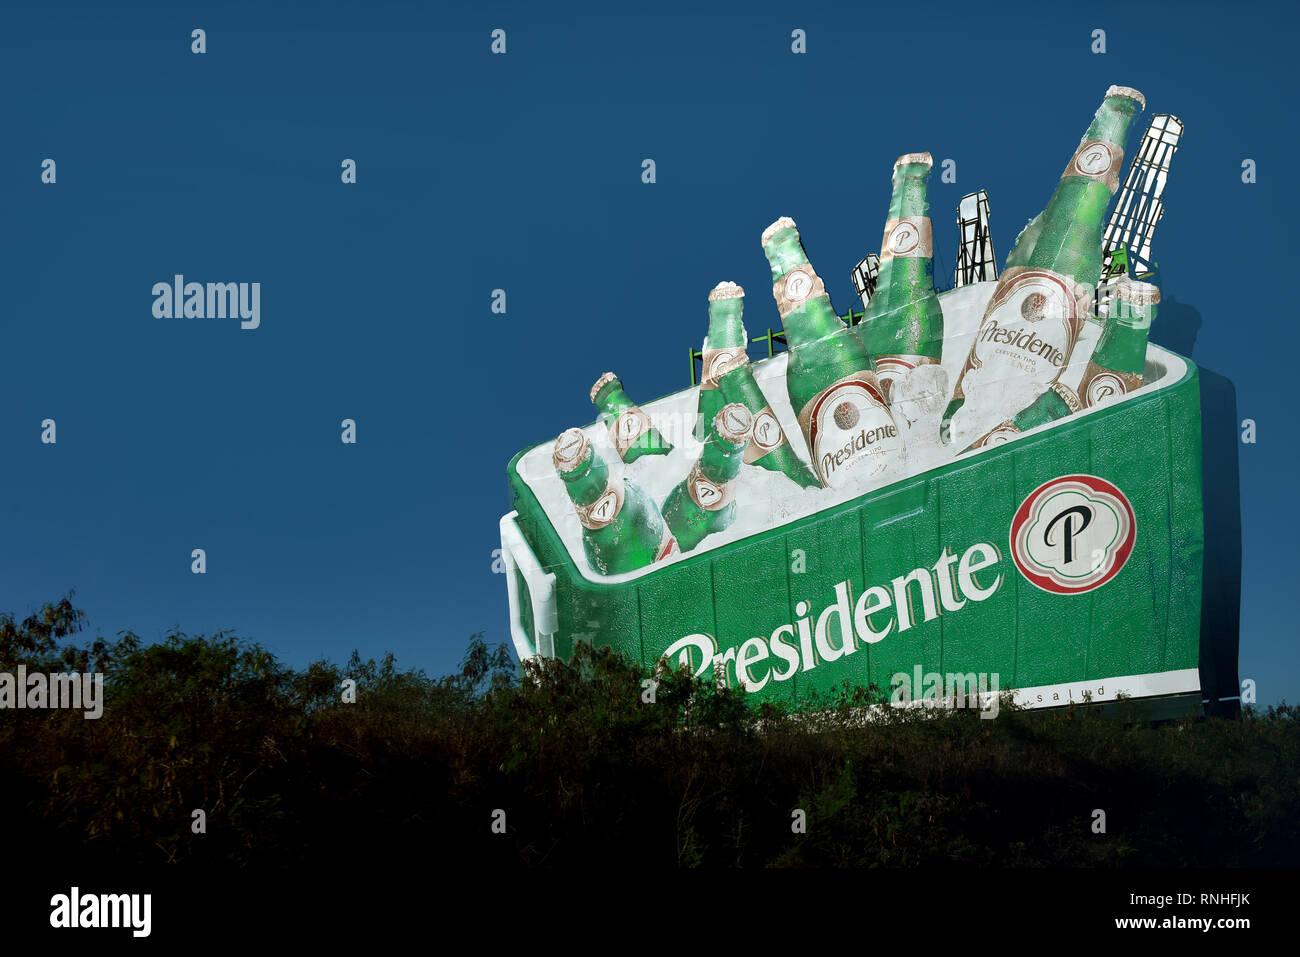 Punta Cana, Dominican Republic - February 7, 2019: Billboard for Presidente the popular beer brewed in the Dominican Republic and exported to several  - Stock Image